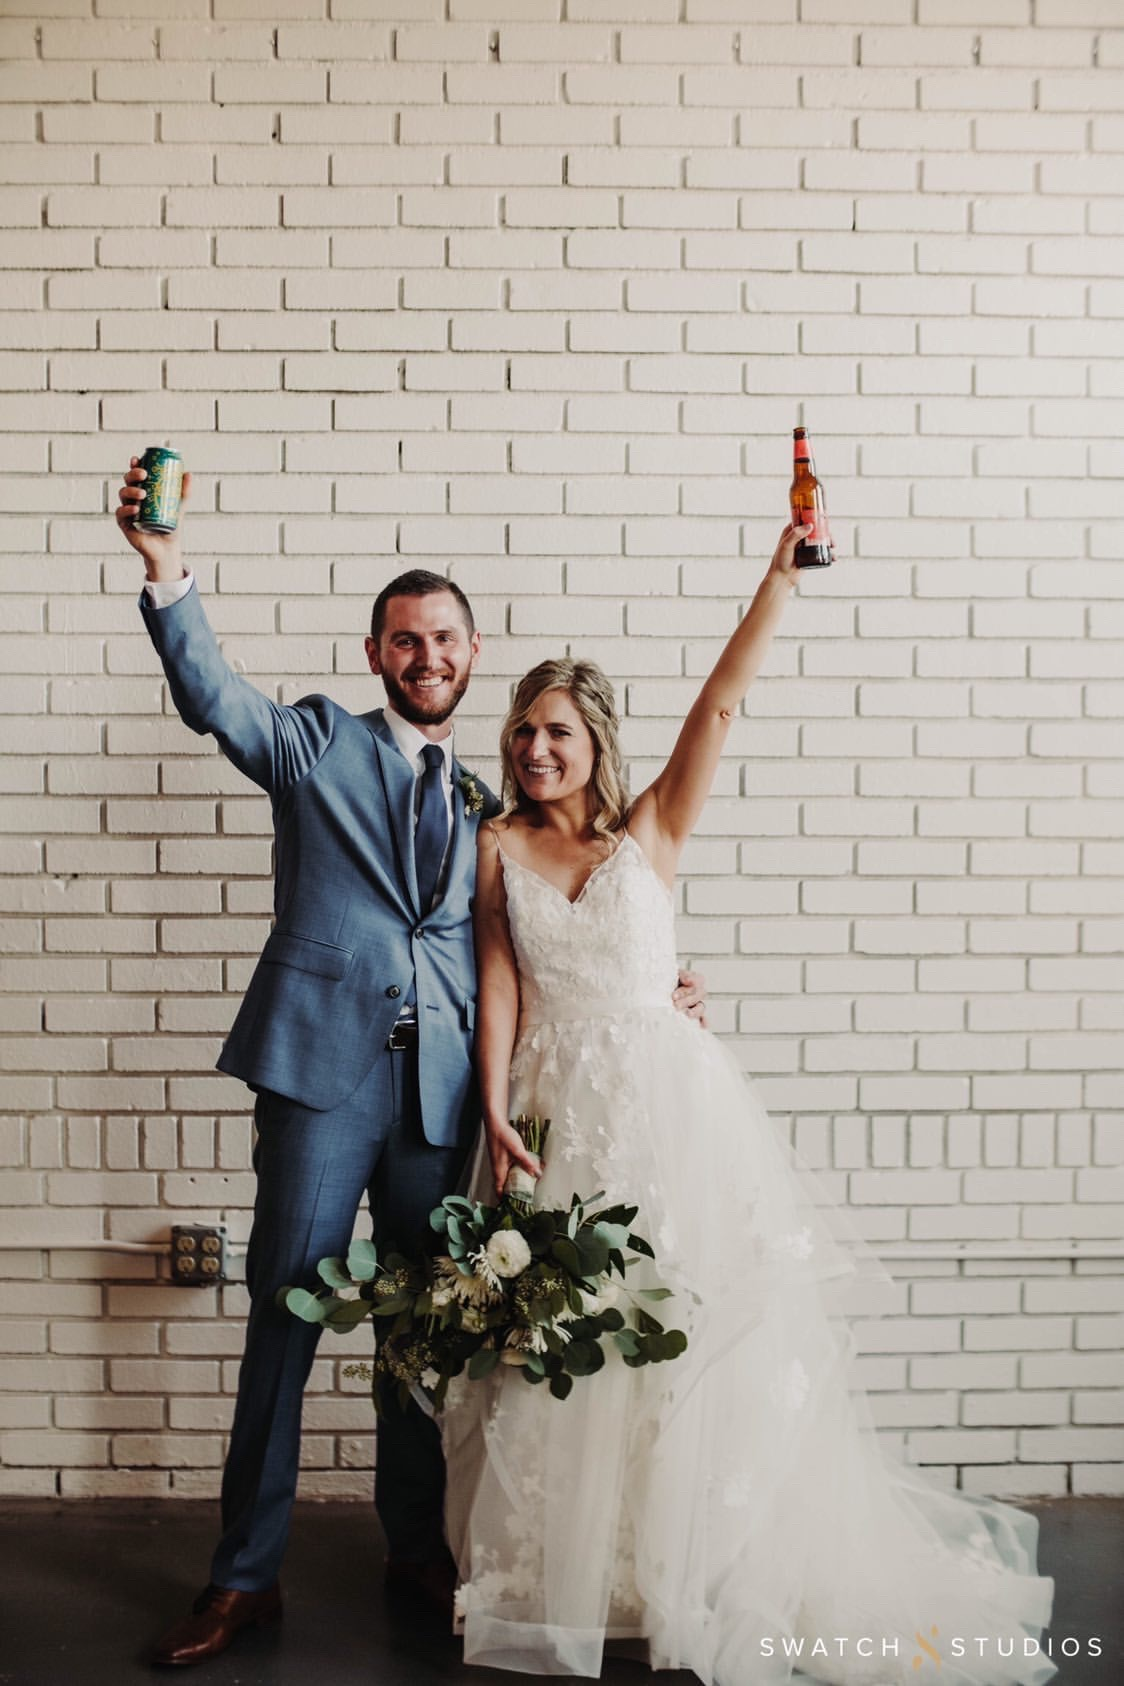 Bride and groom raising glasses to toast in front of a white brick wall at The Venues in Downtown Toledo